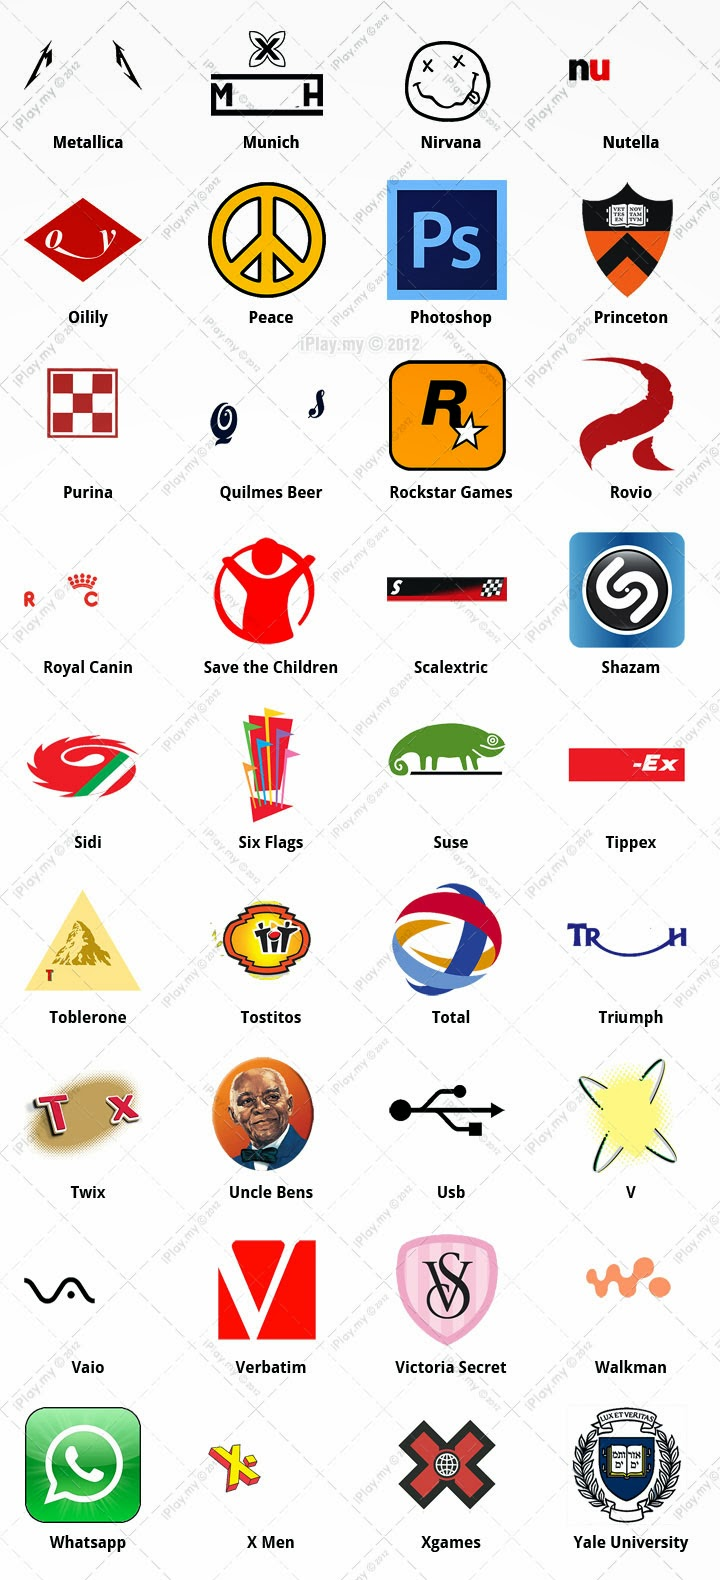 logo quiz ultimate answers level 11